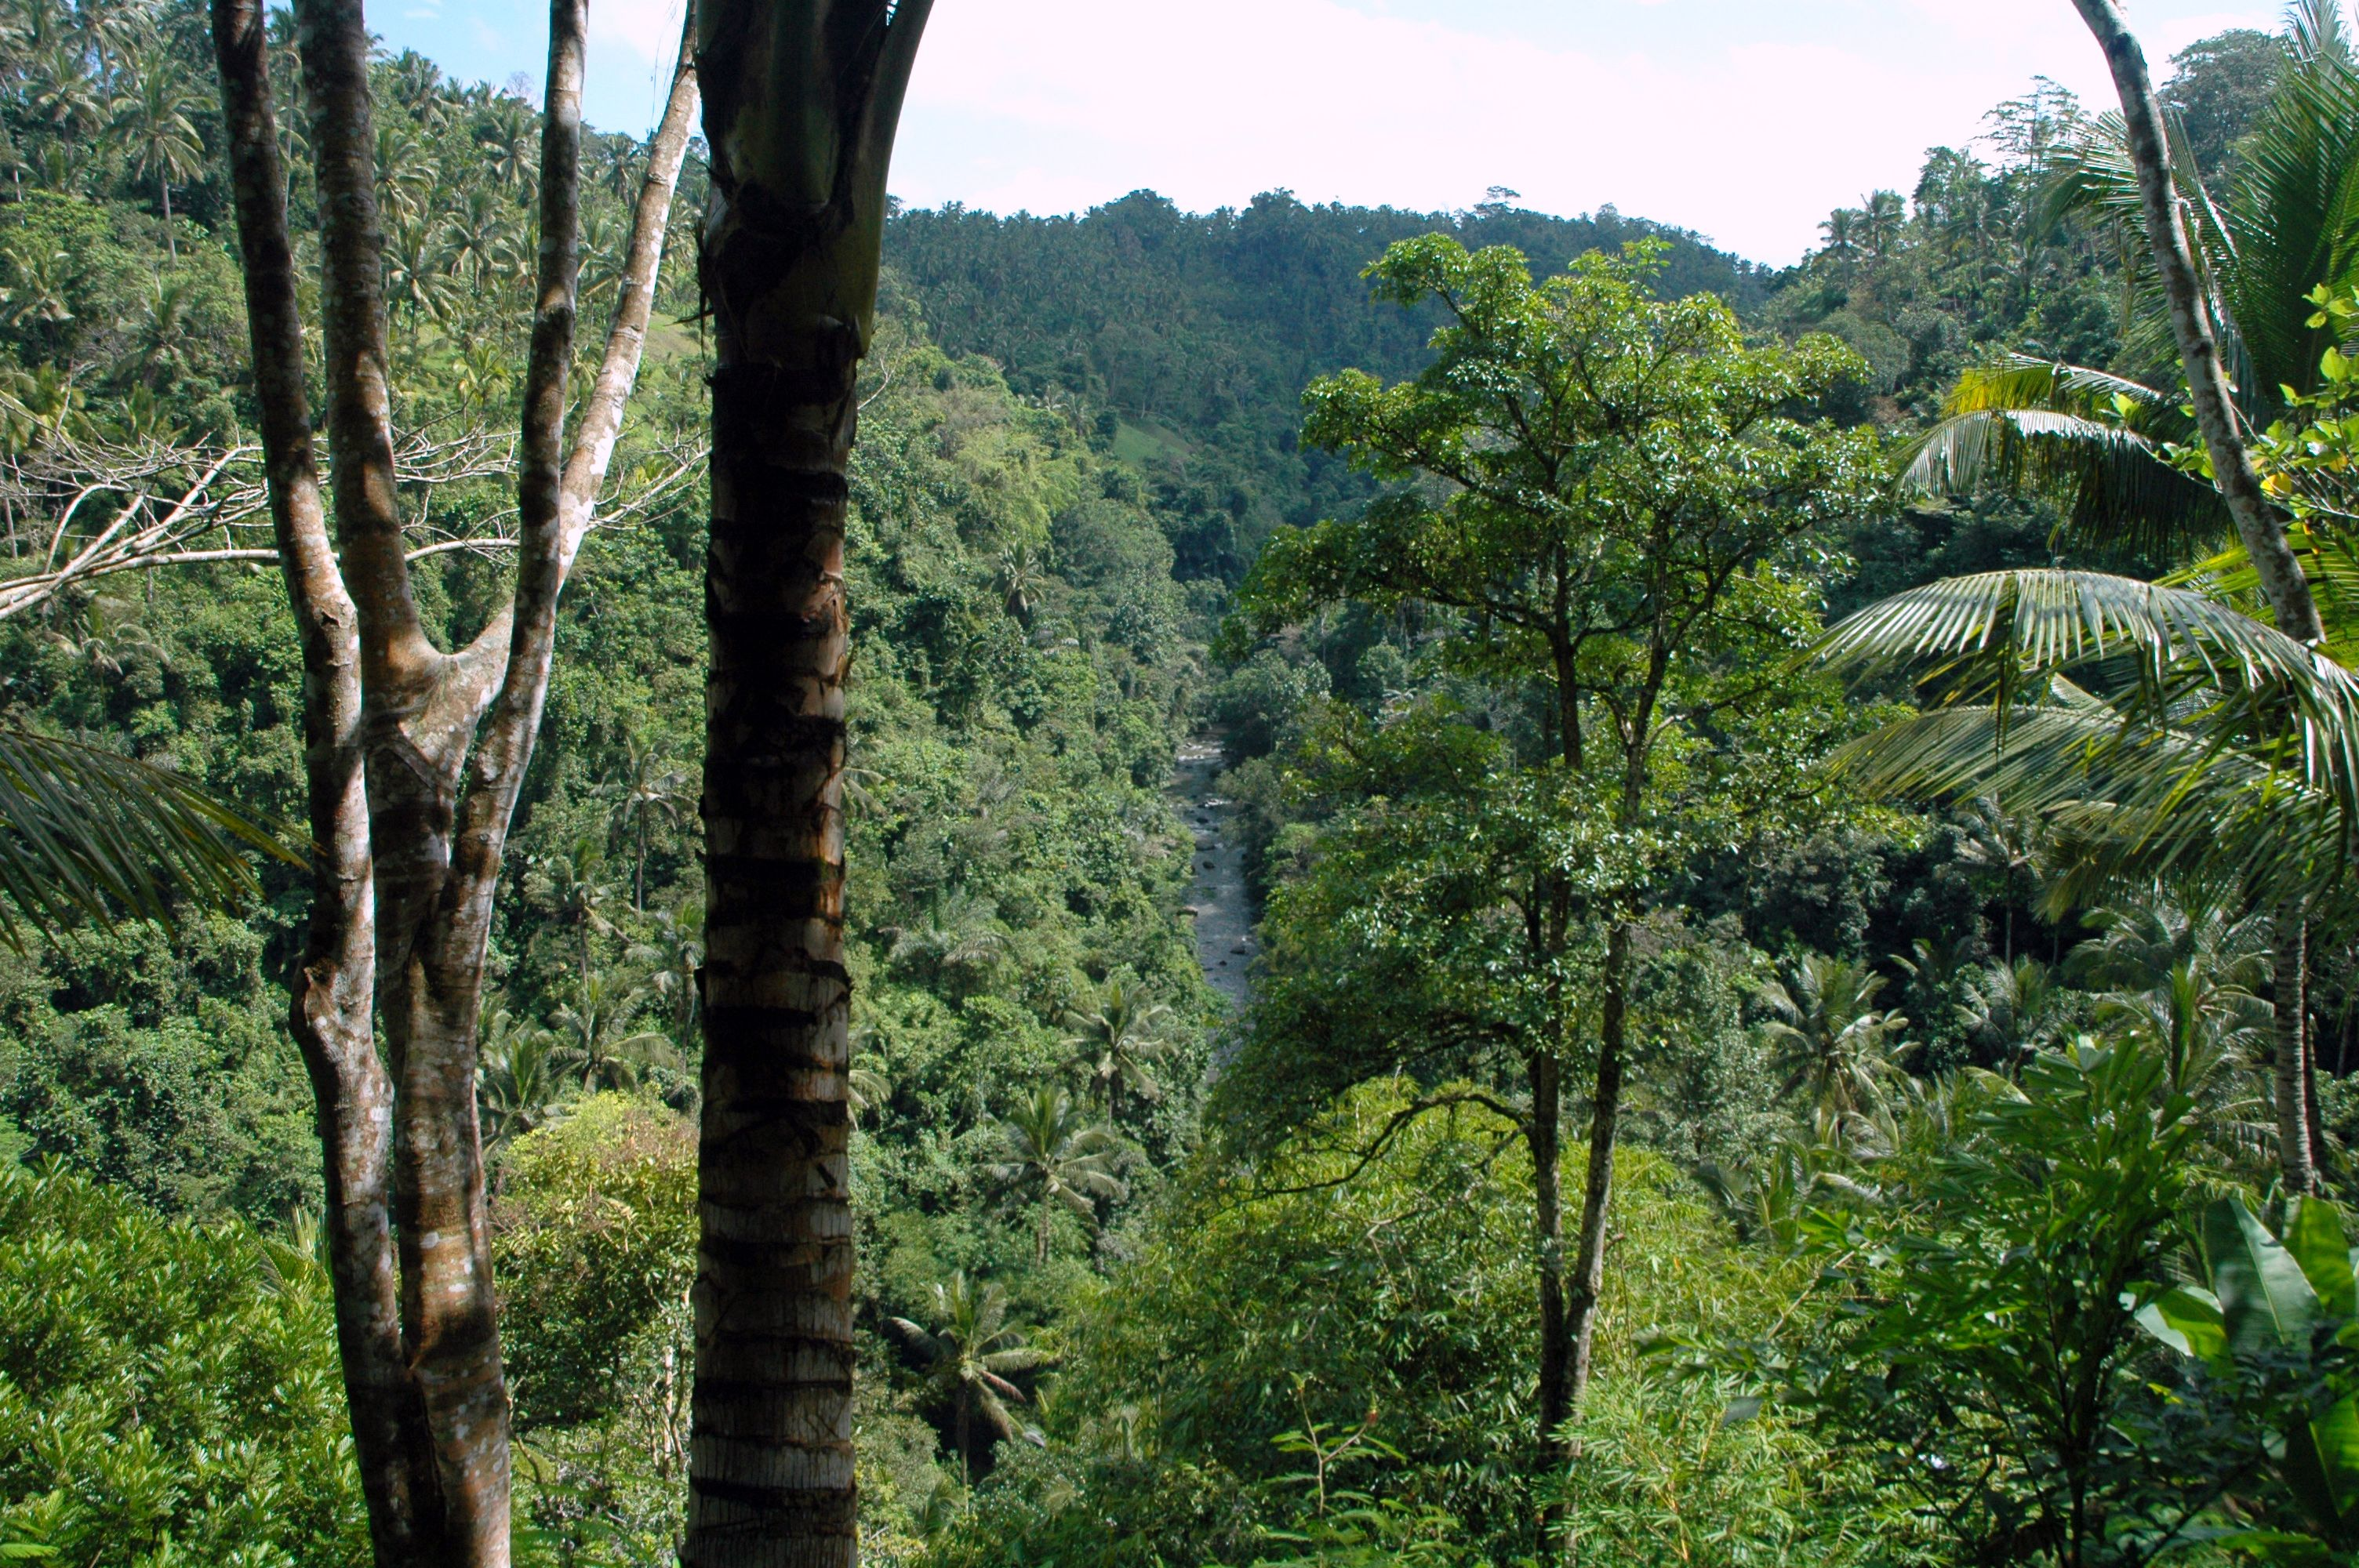 Rain Forest Indonesia travel, Rainforest, Forest